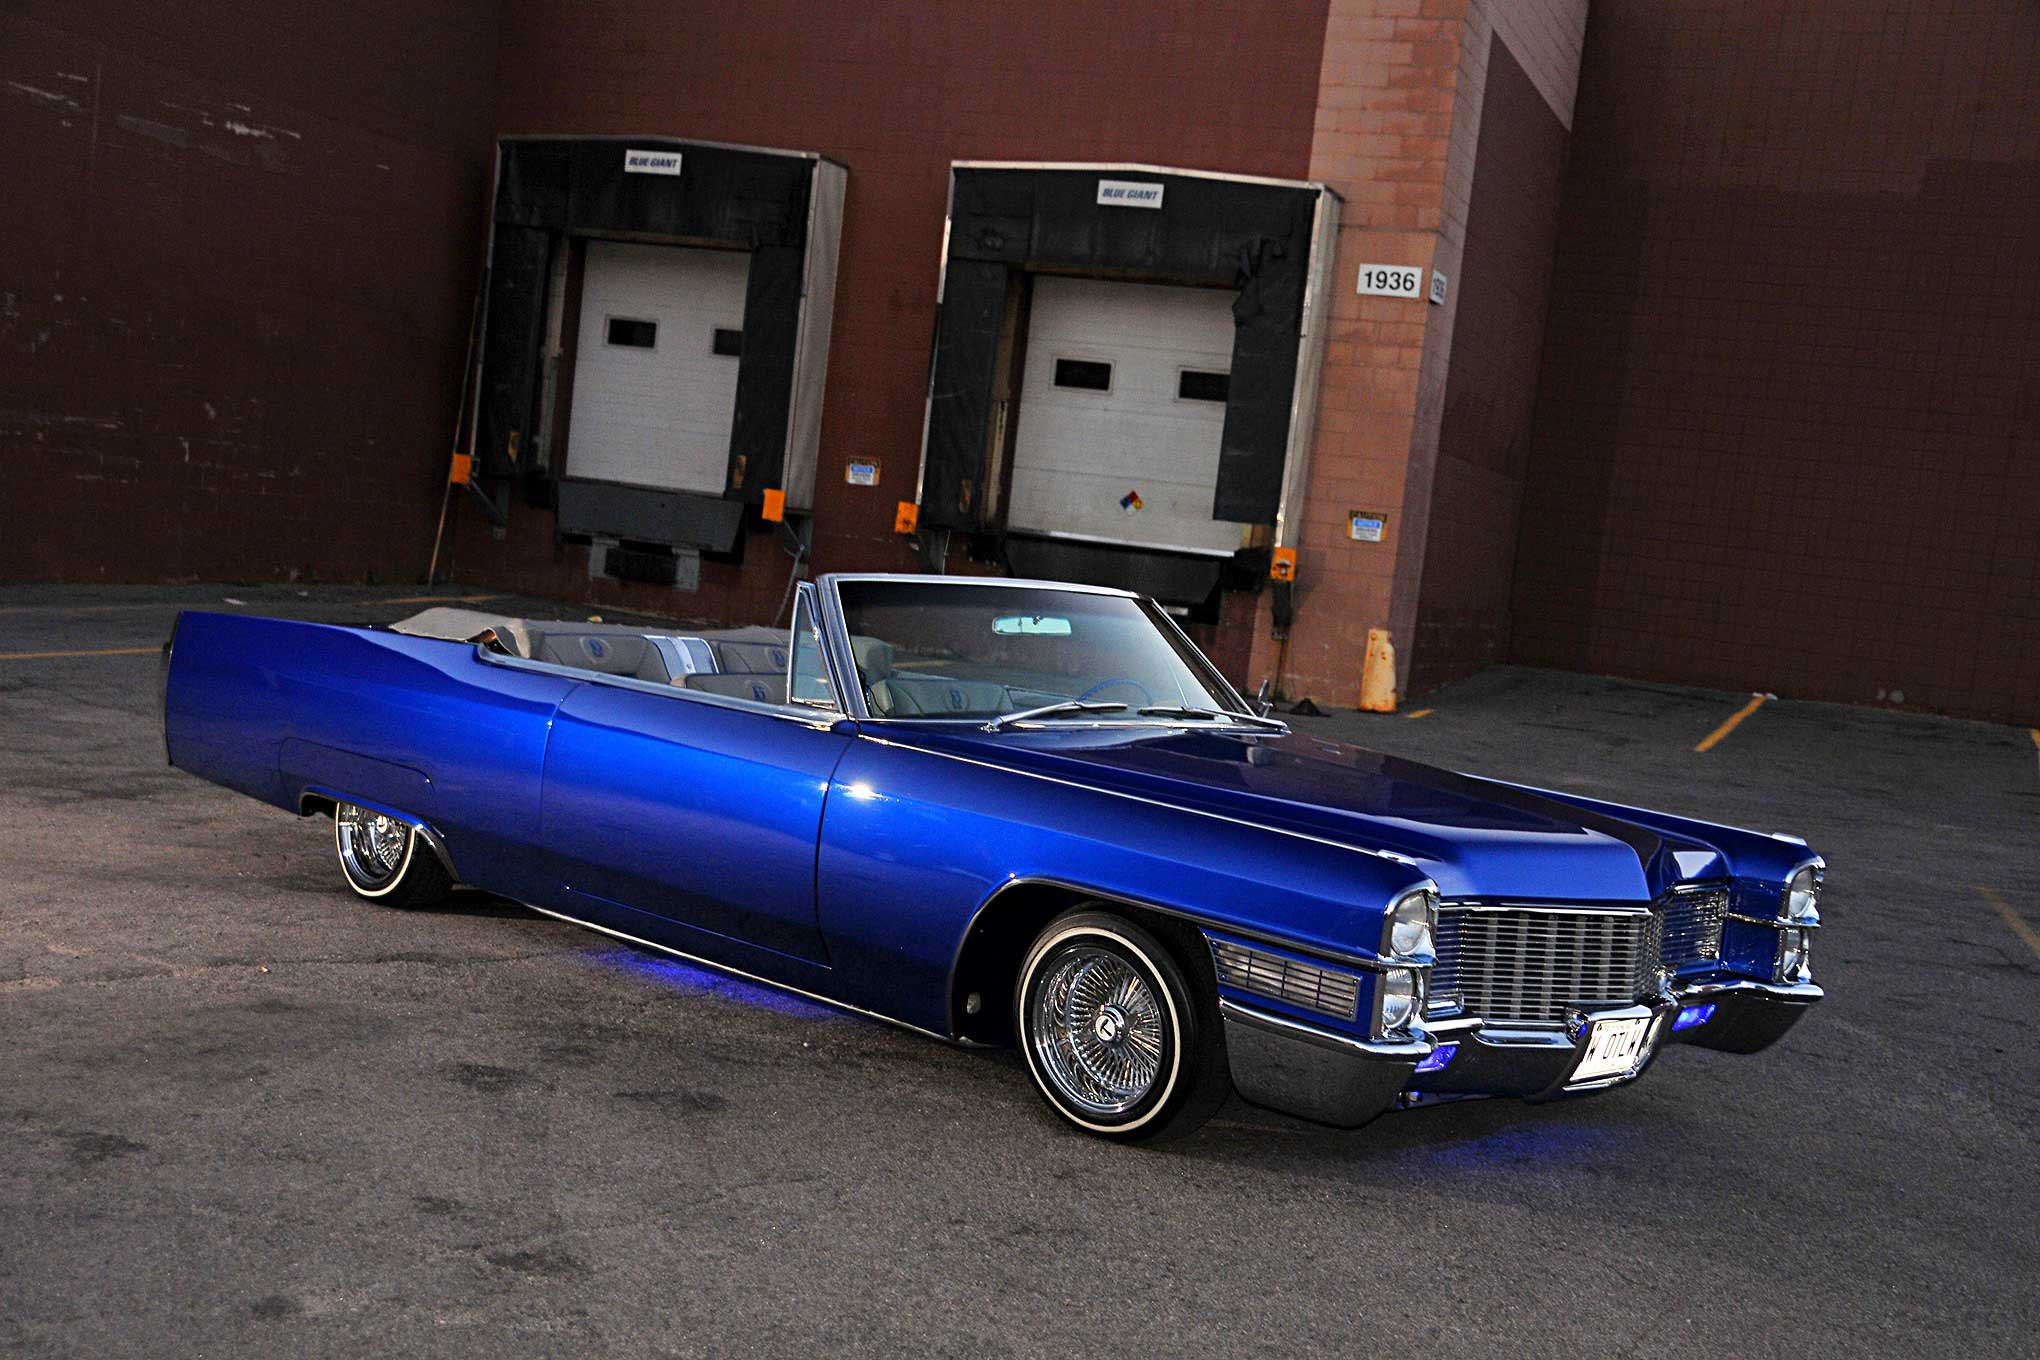 1965 Cadillac Coupe De Ville From Tragedy To Triumph